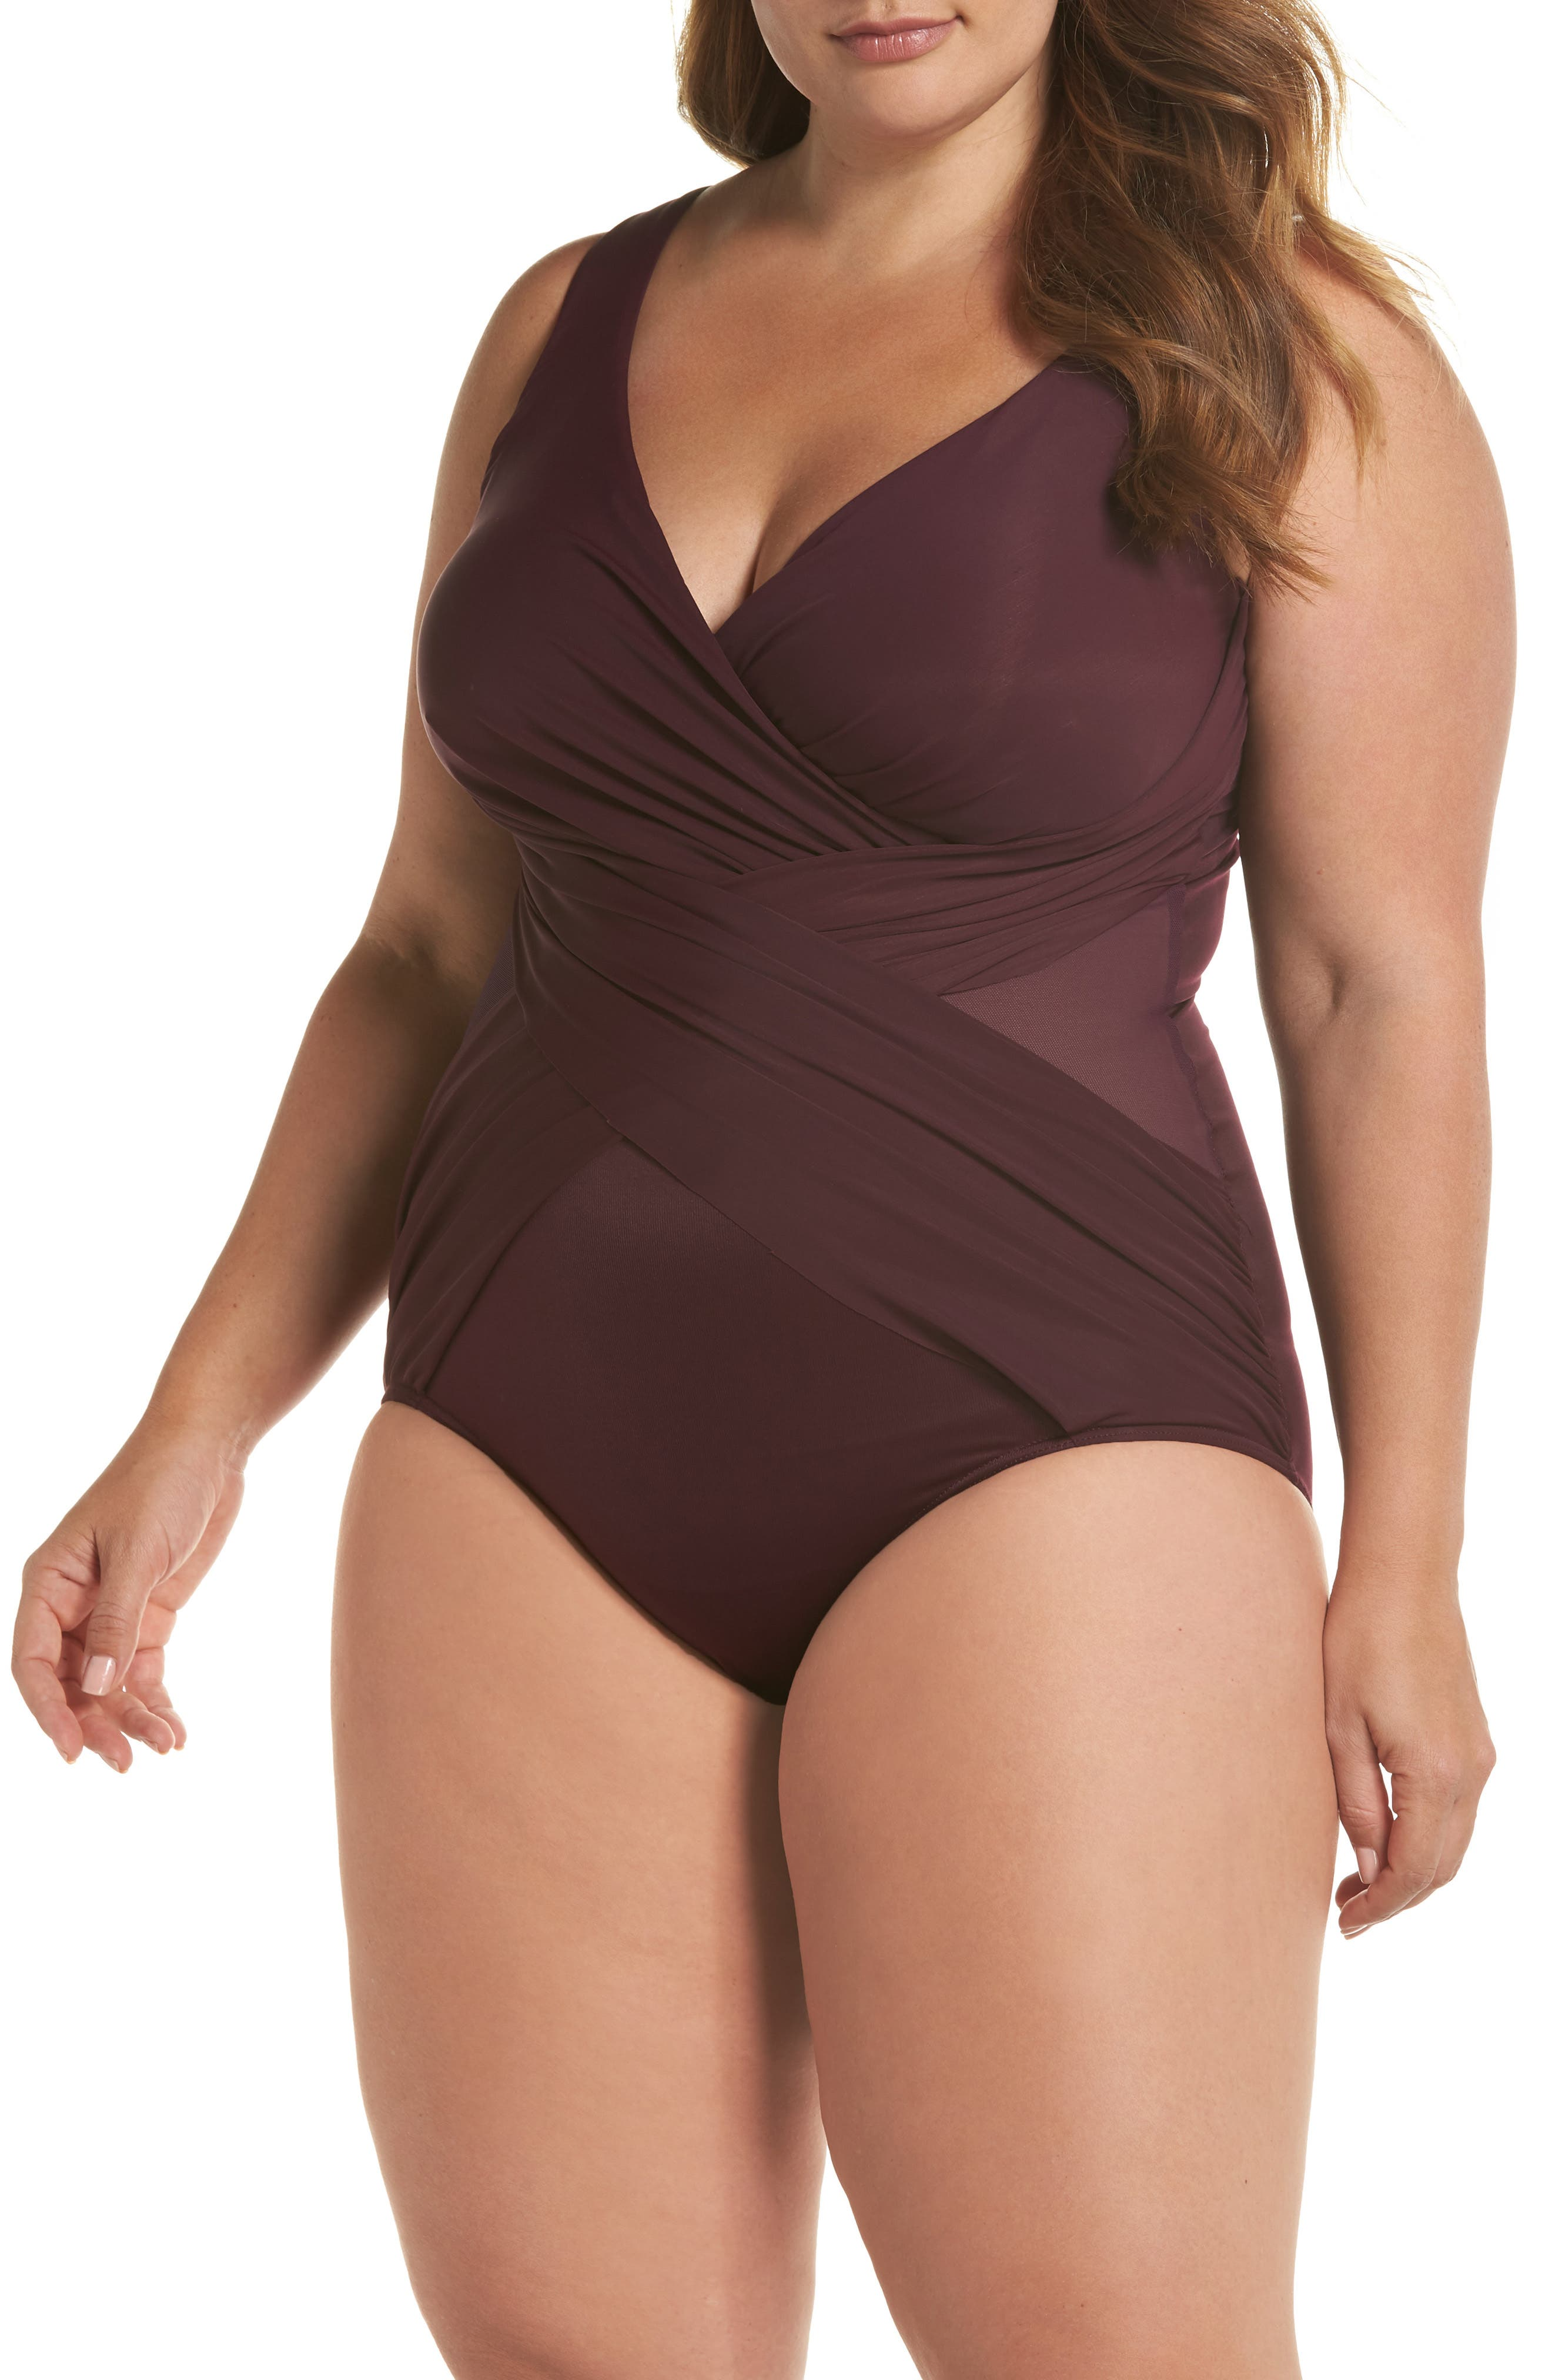 Illusionist Crossover One-Piece Swimsuit,                         Main,                         color, SHIRAZ